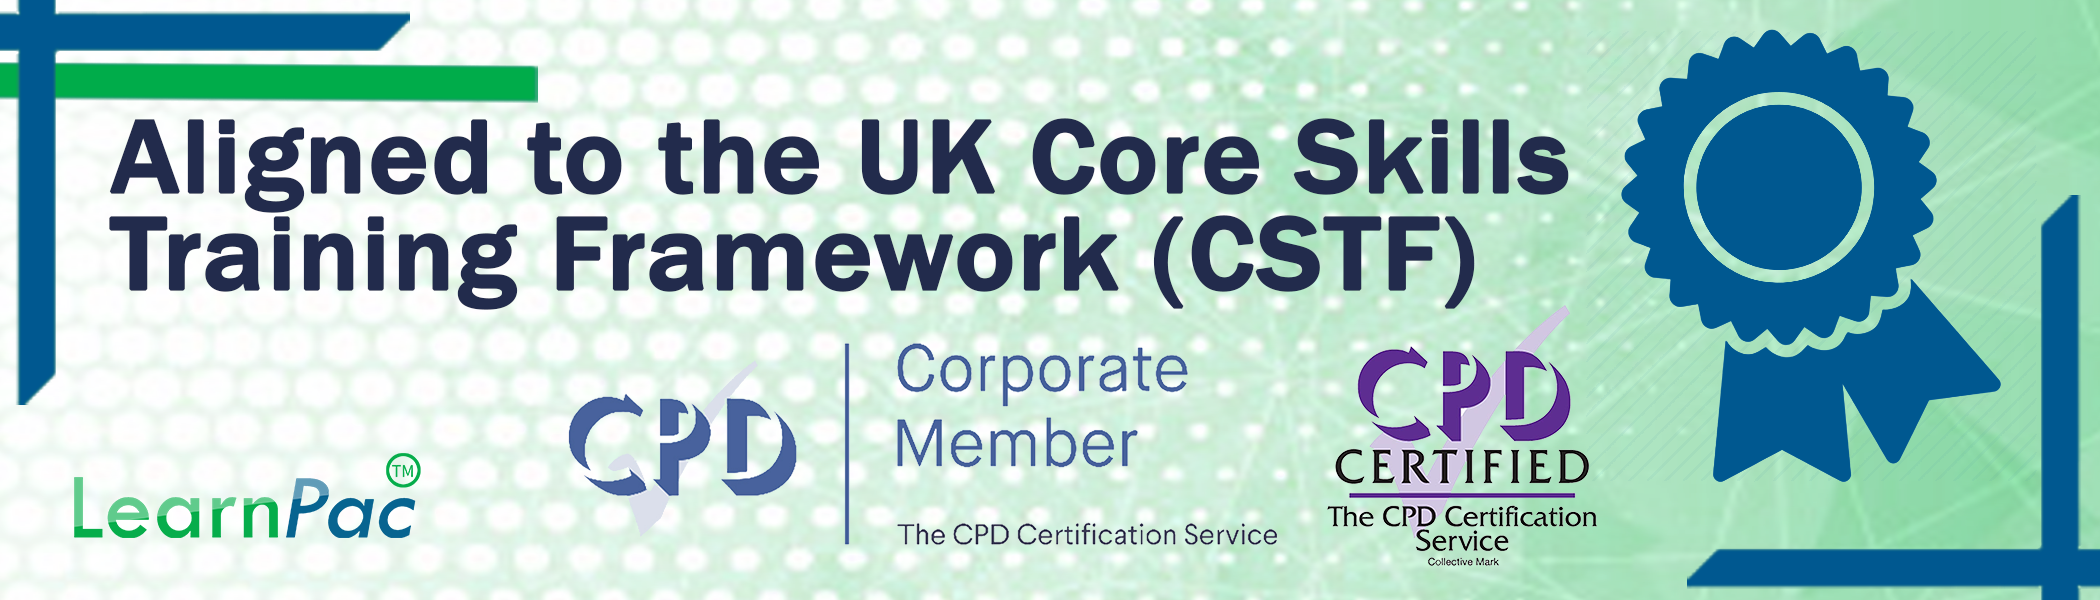 CPD Banner - CPDUK Accredited - Learnpac System UK -